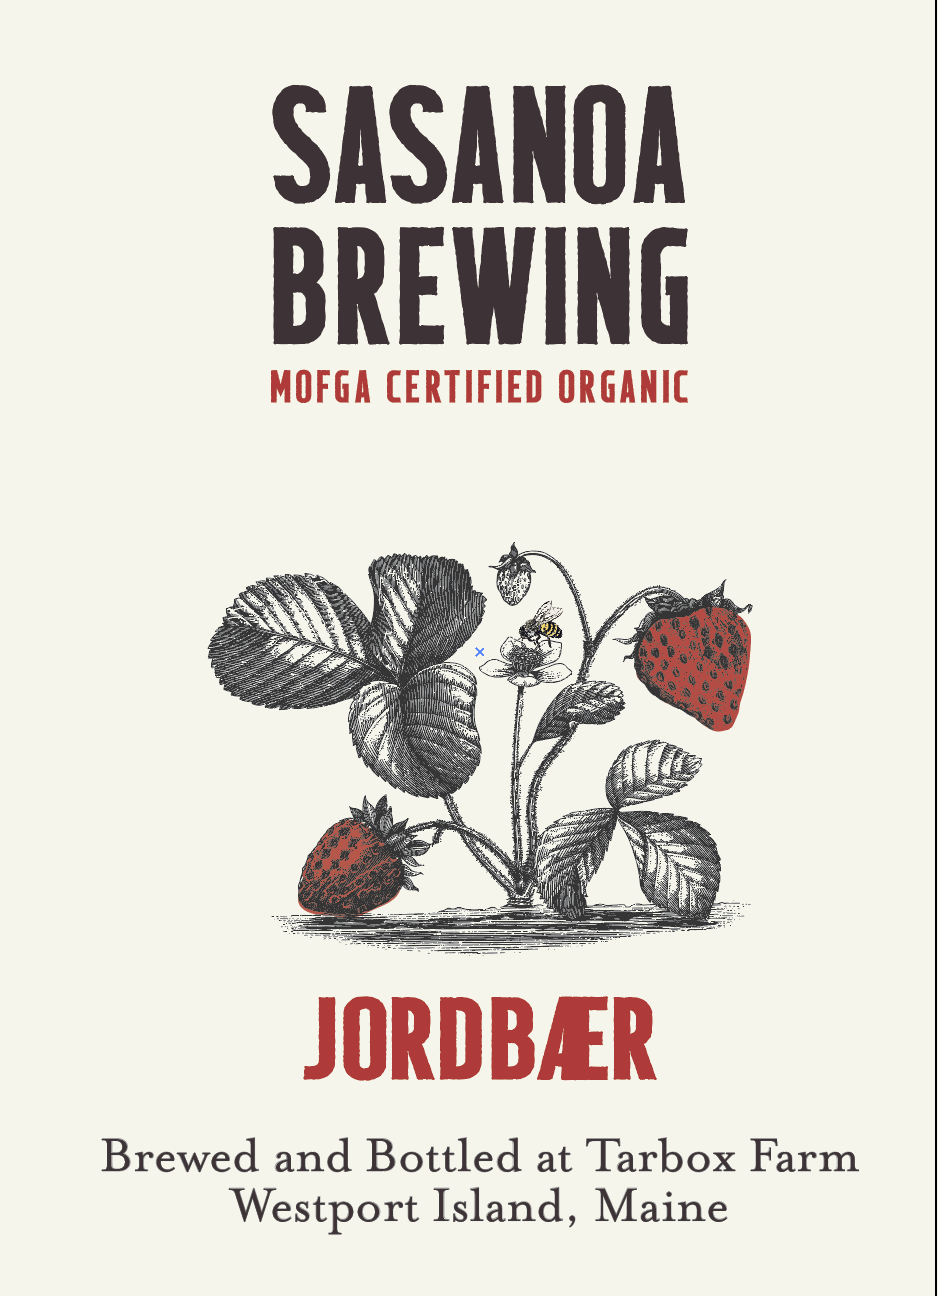 Jordbaer - Jordbaer is a refreshing, tart, strawberry saison brewed with 72 lbs of organic strawberries per barrel and a touch of lime basil for some citrus notes. The organic strawberries and lime basil were grown at our farm. The remaining ingredients were sll grown on other organic farms in Maine.Made with all Maine ingredients: Organic Strawberries, Organic Barley, Organic Wheat, Organic Hops, Organic Lime BasilBottle conditioned with organic maple syrup. 750 ml, 1 pint 9.4 fl oz5.5% ABV